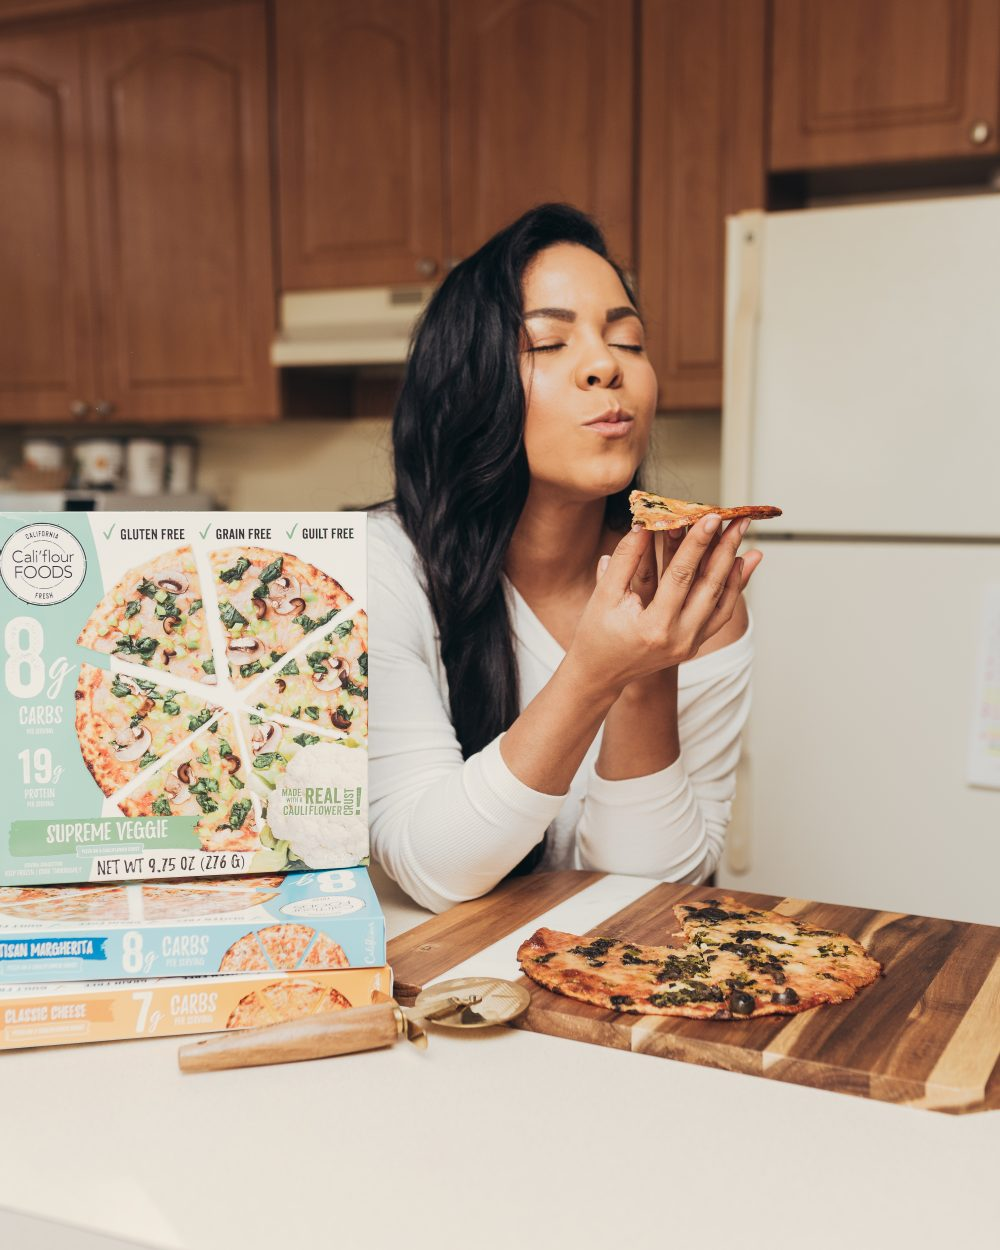 Looking for a healthy pizza option that's low carb, grain-free and gluten-free? I got you! This cauliflower pizza is my obsession, and I wanted to share it with you!